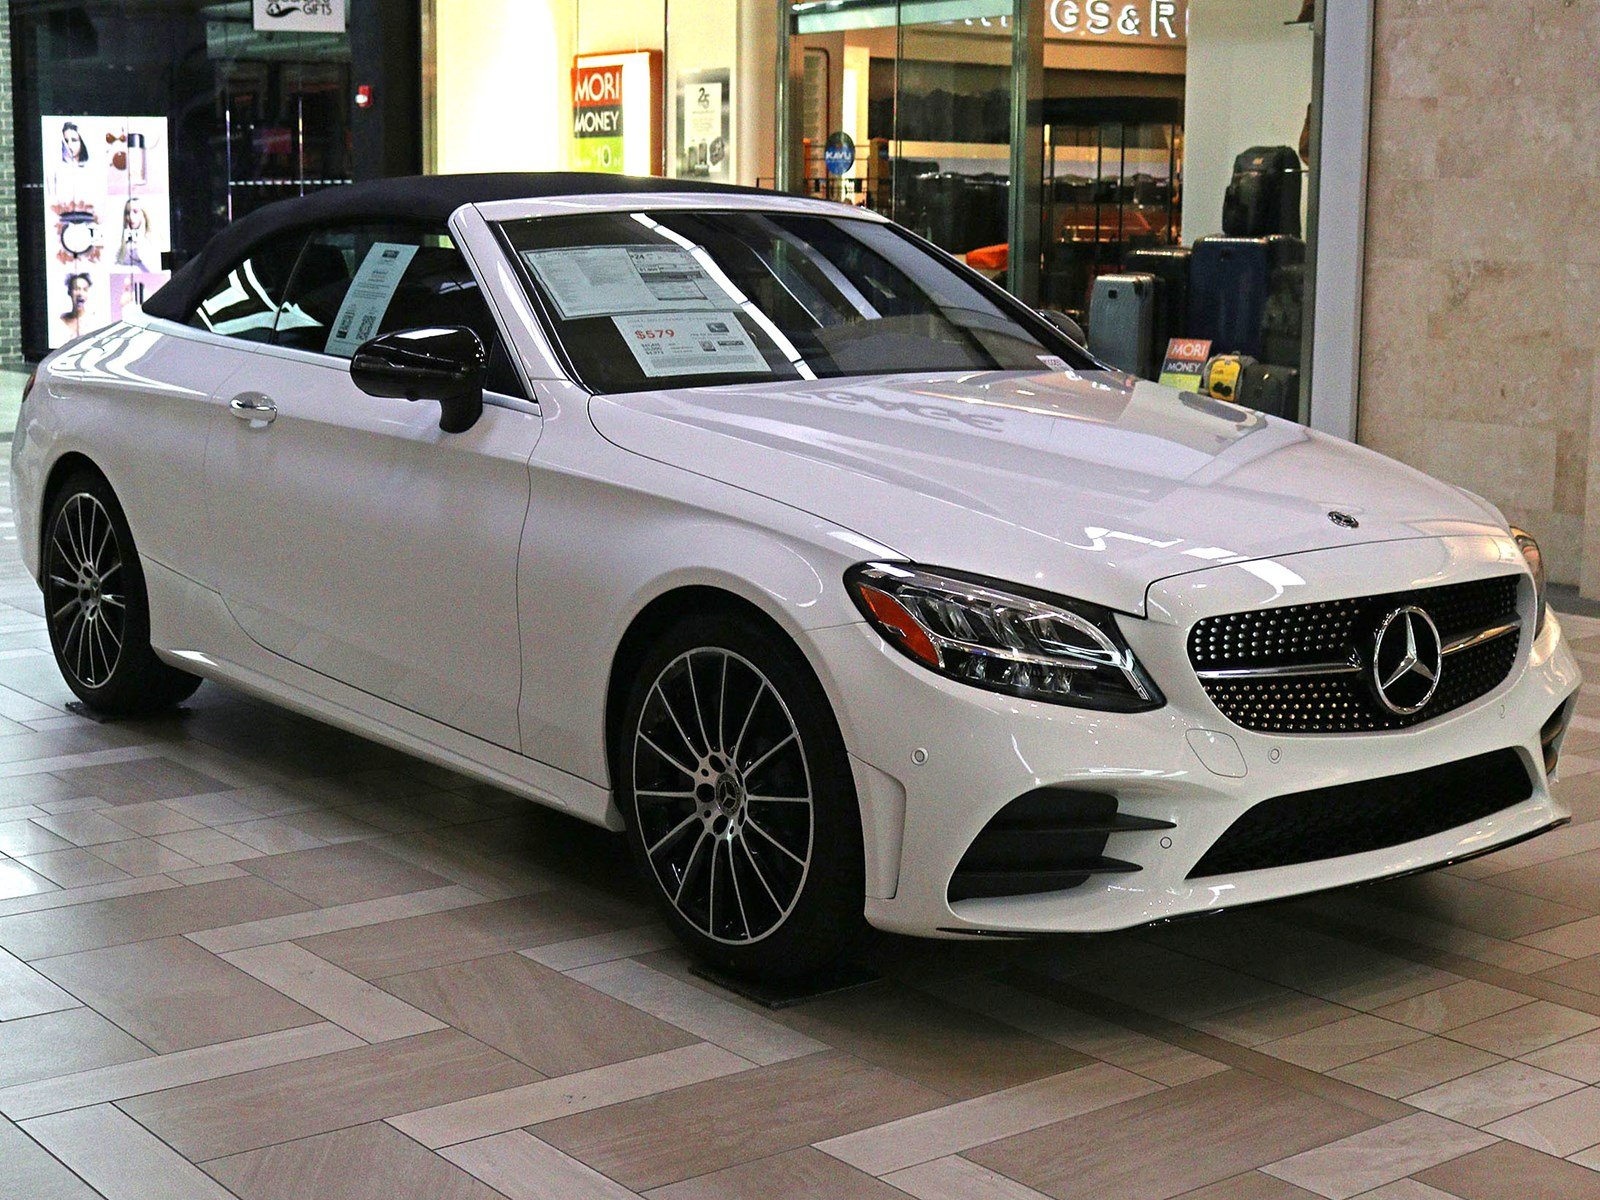 New 2019 Mercedes Benz C Class C 300 Cabriolet Convertible in